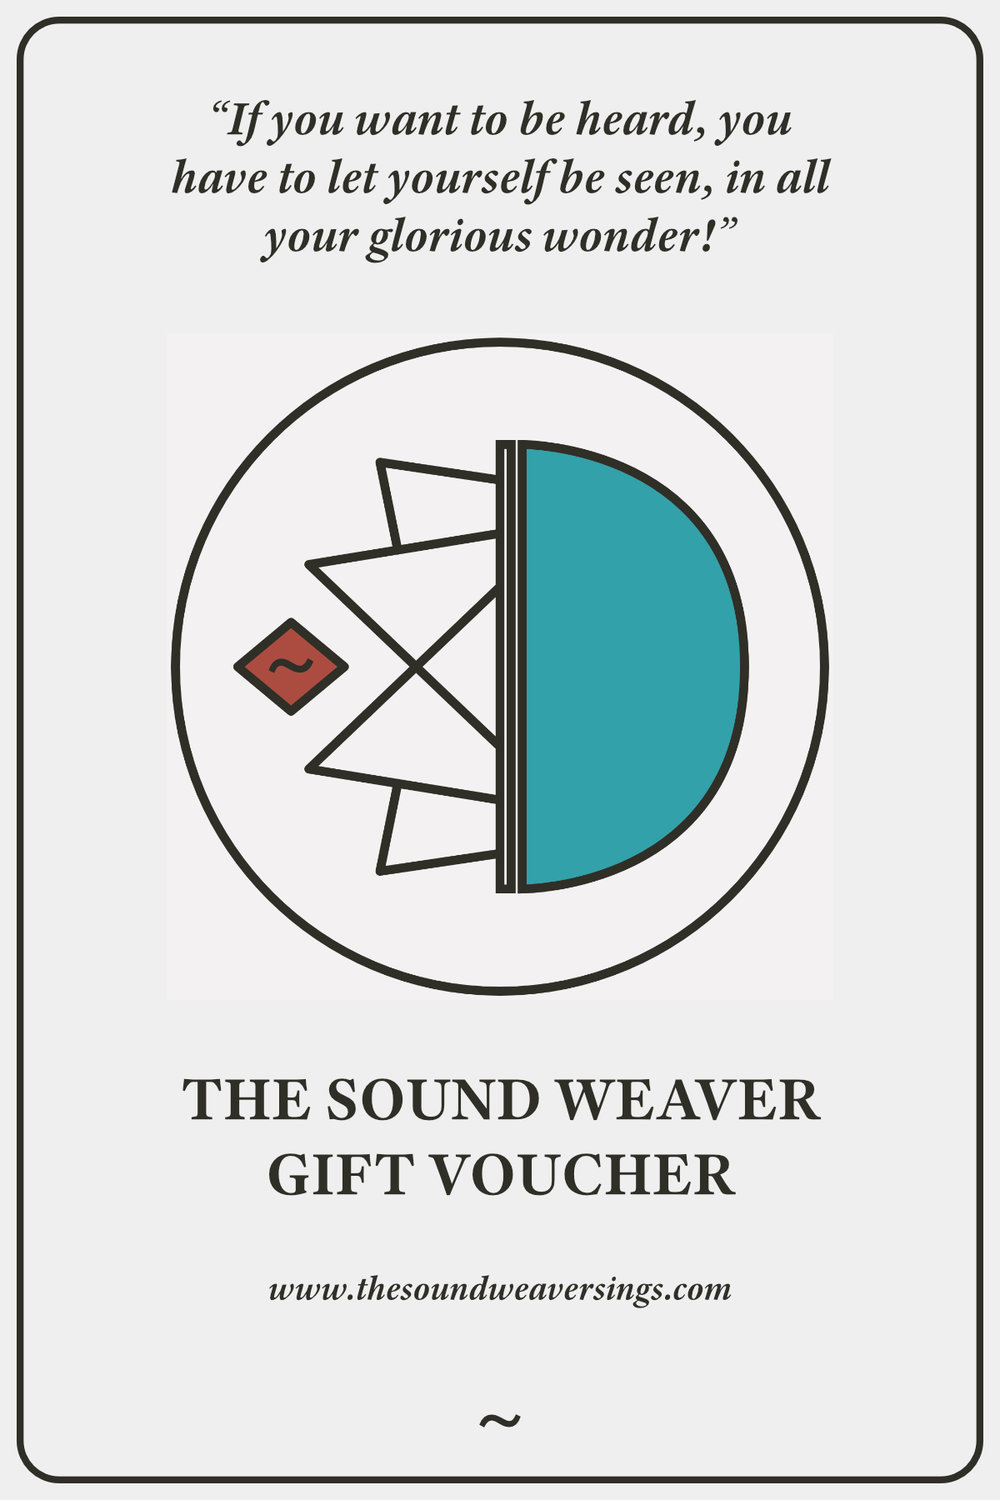 Buy Now - Sacred Sound & Yoga Gift Voucher